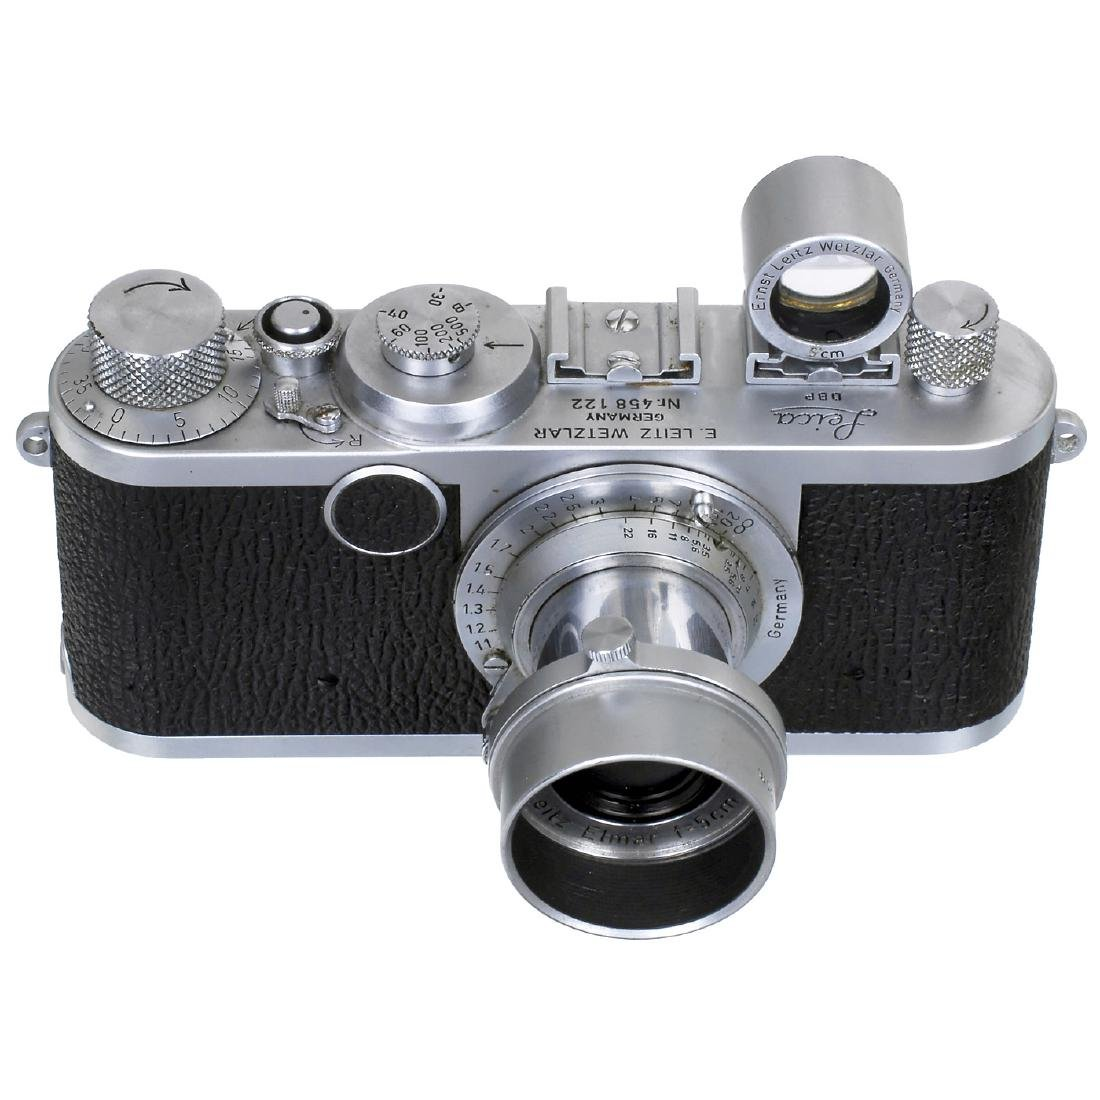 Leica Ic with 5cm Finder, 1949